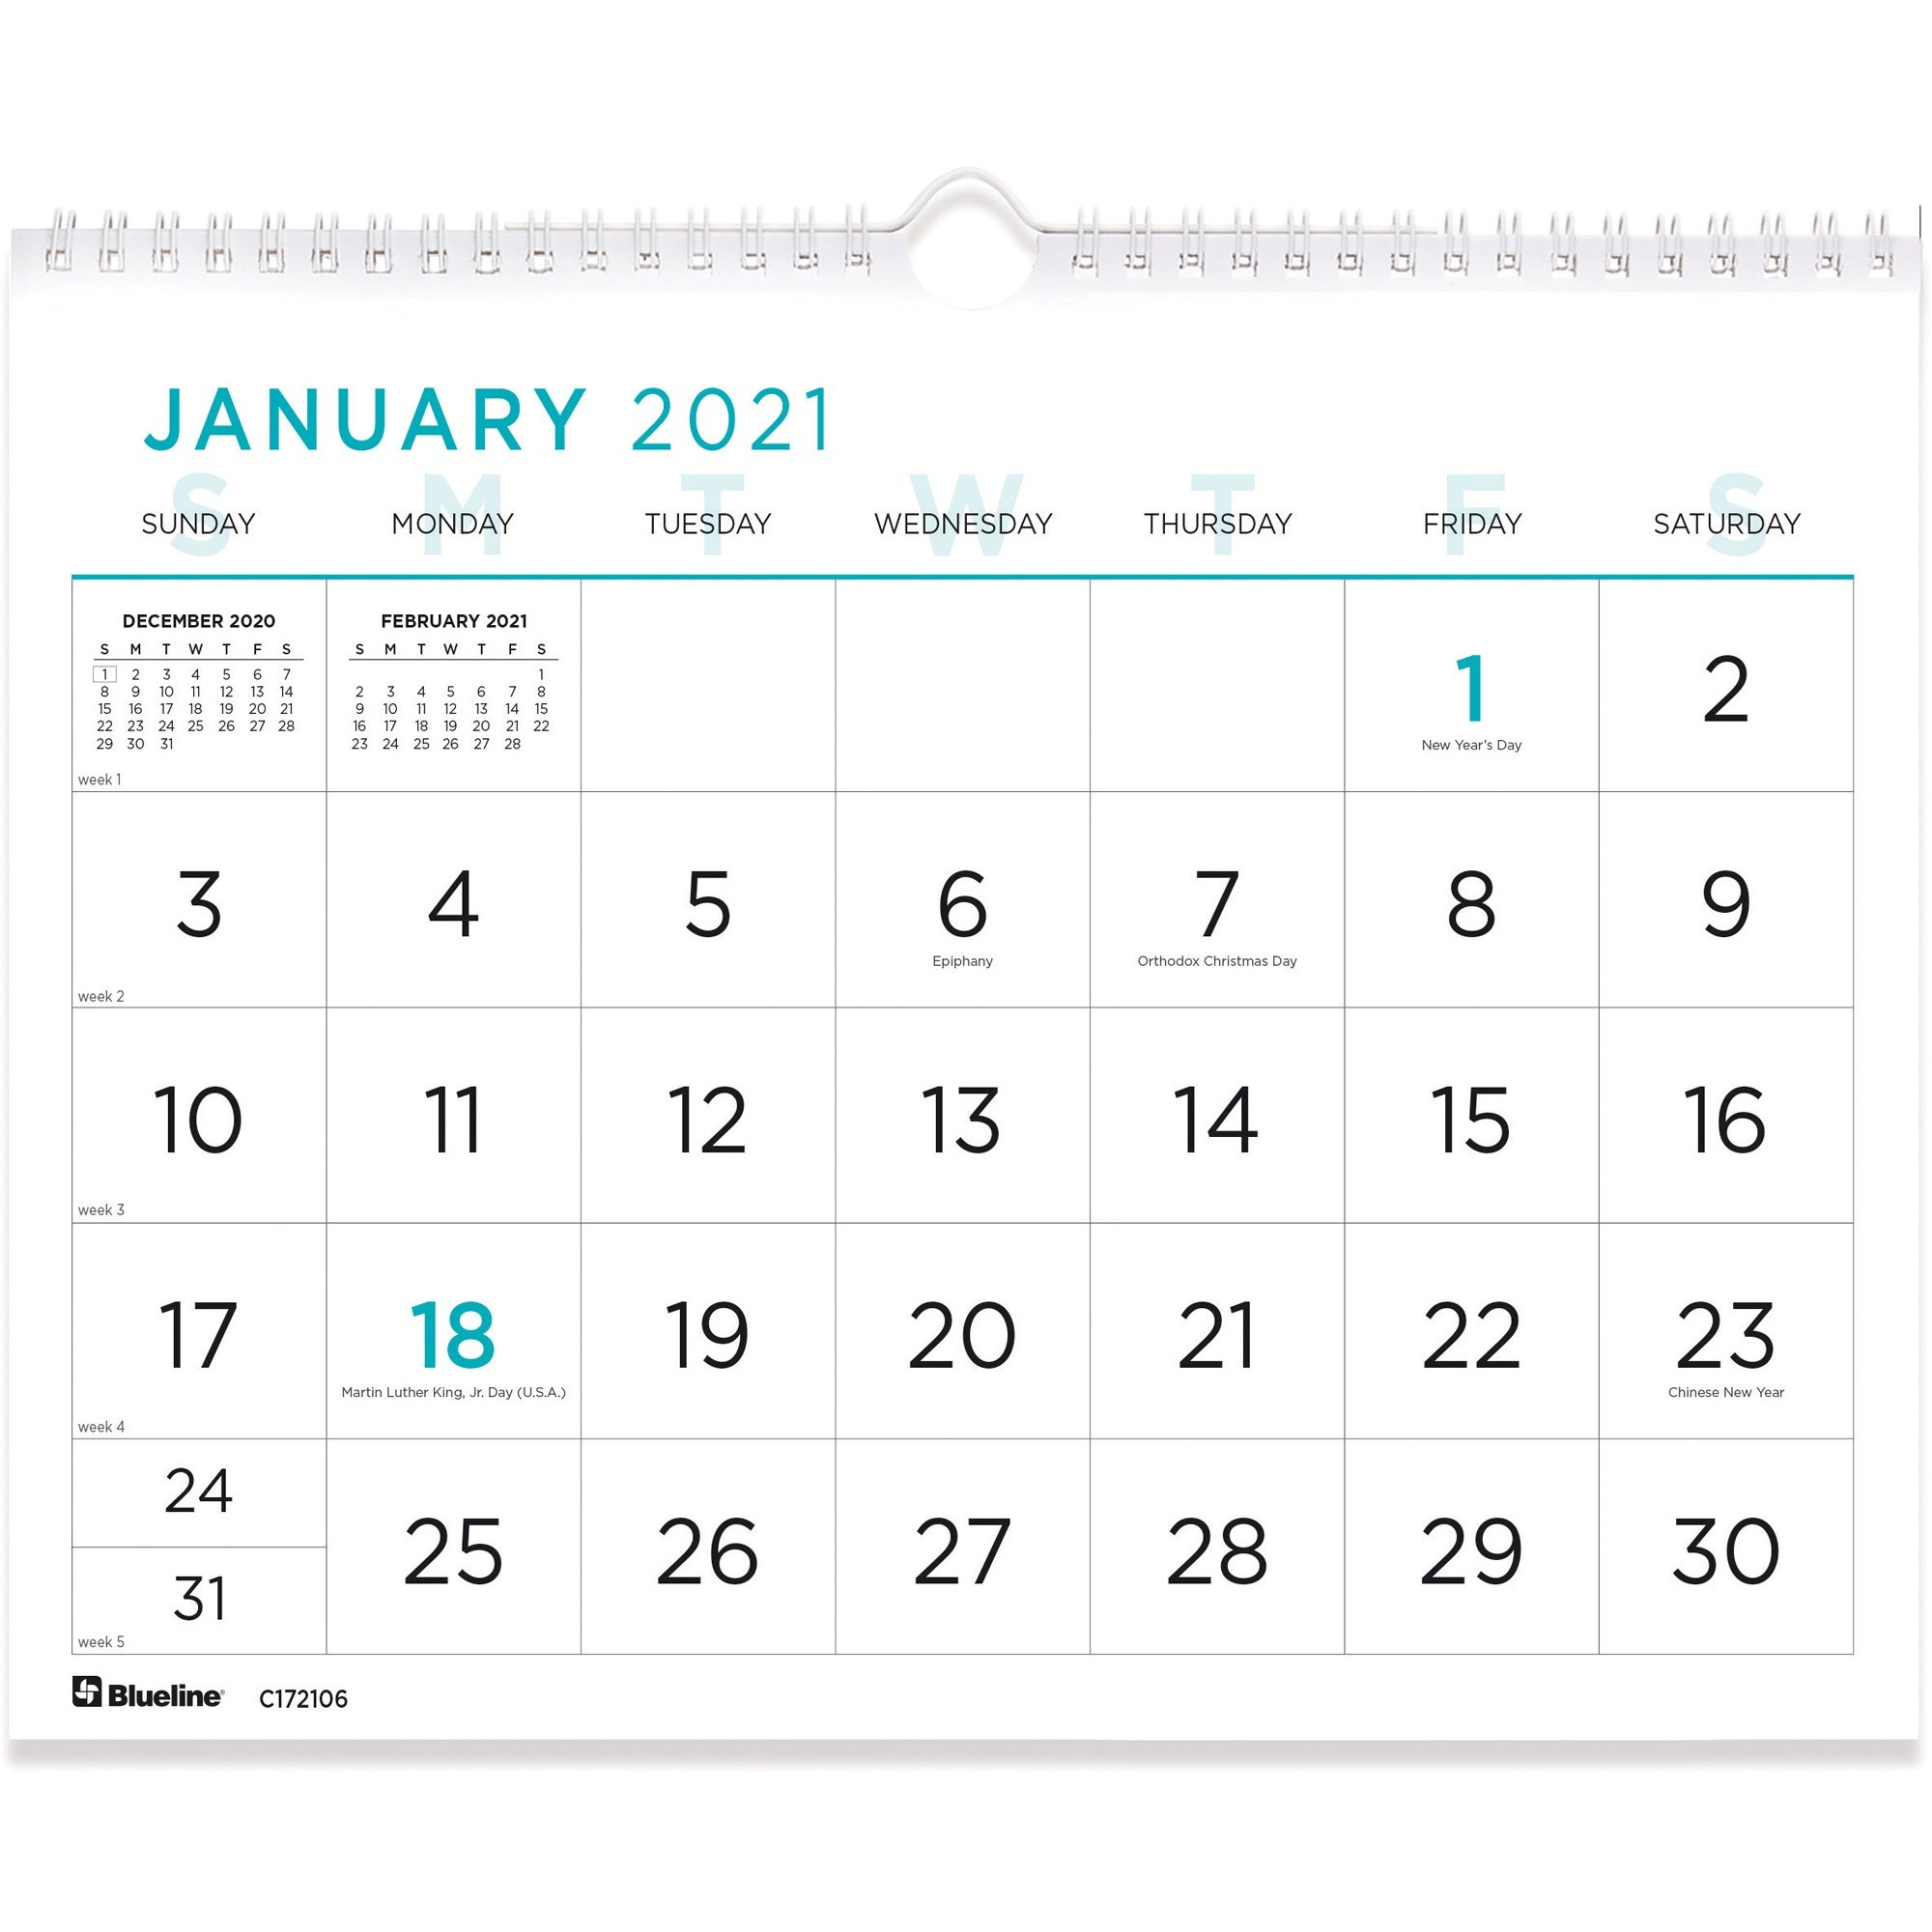 Blueline Print Wall Calendar Monthly 1 Year January 2021 till December 2021 1 Month Single Page Layout Twin Wire Light Blue REDC x